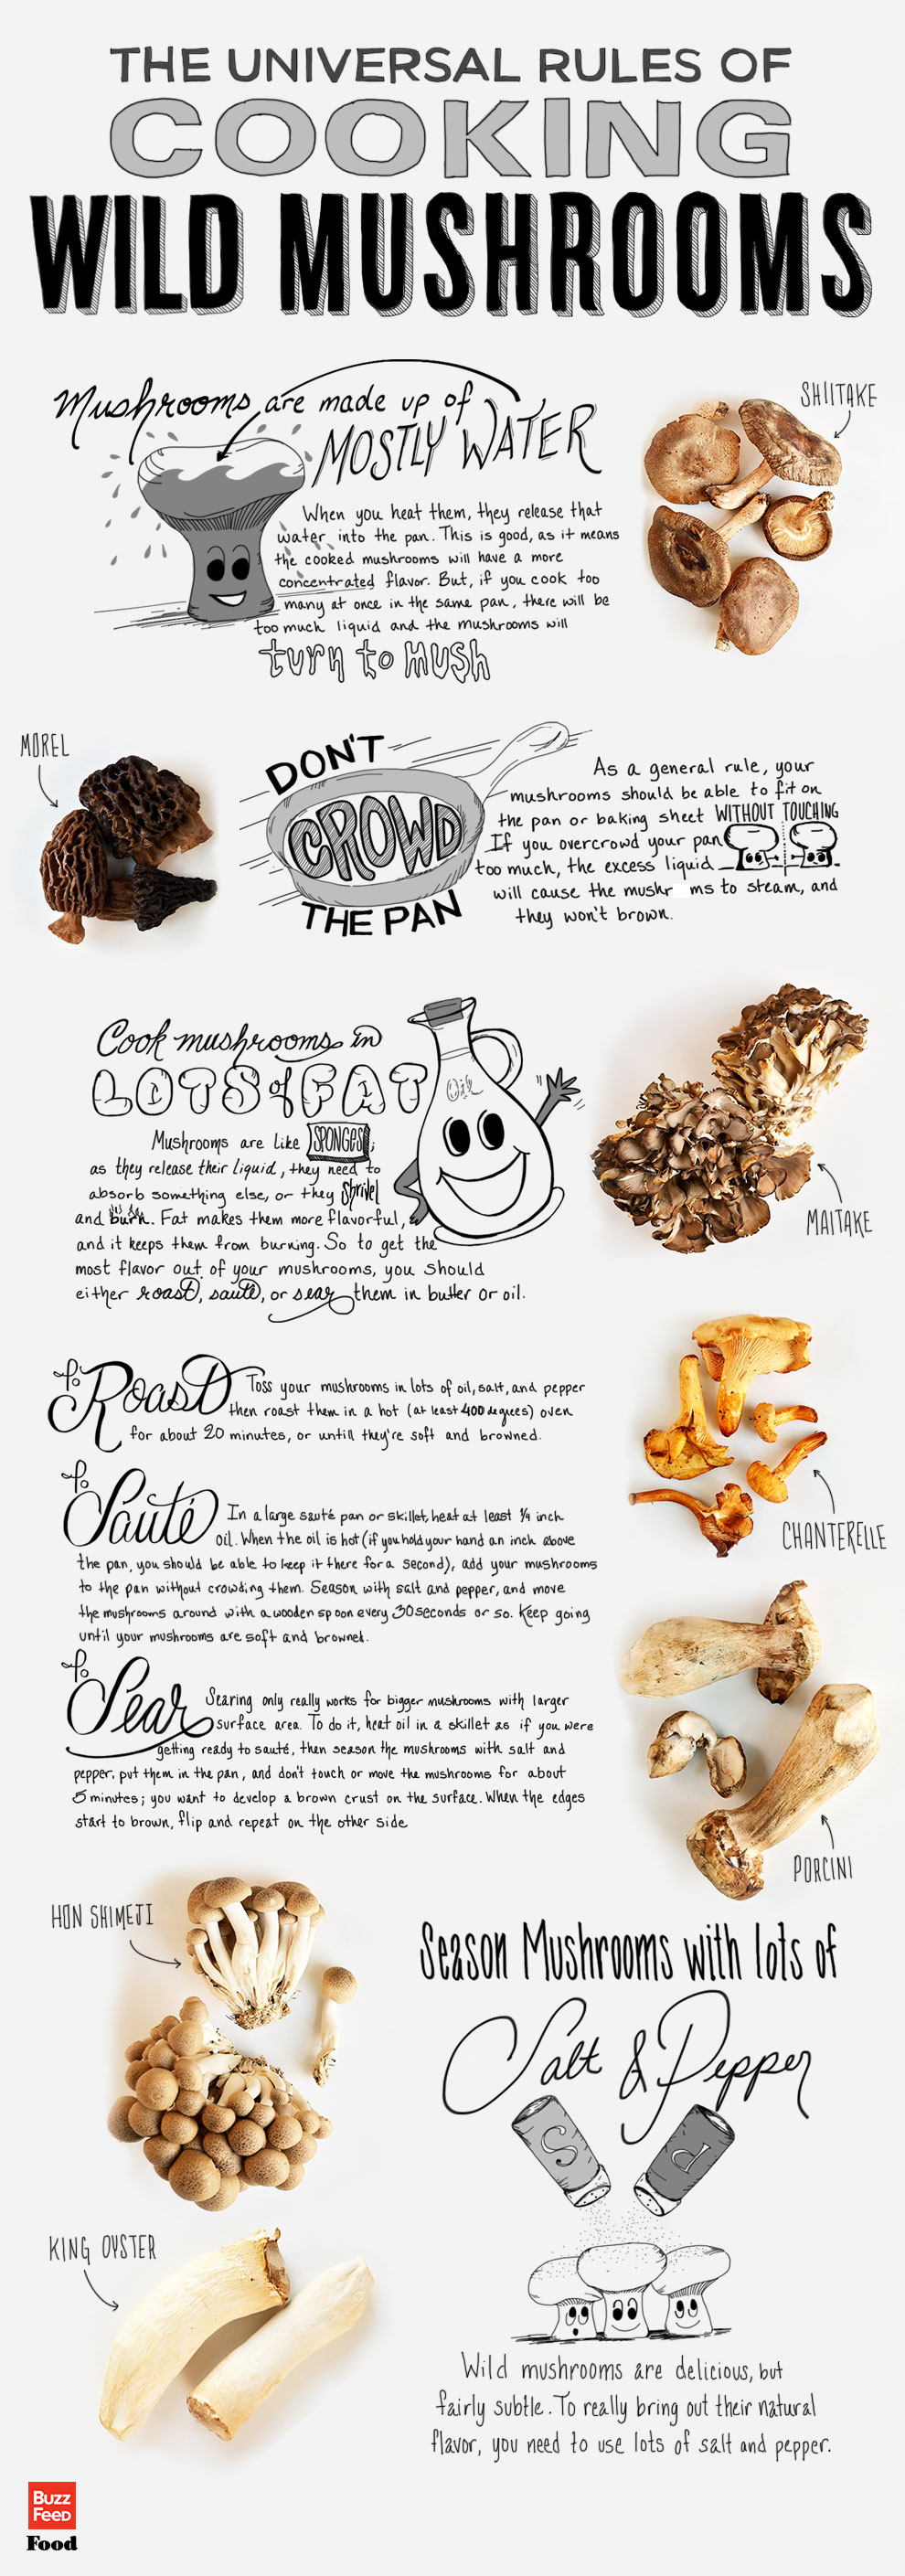 The Universal Rules of Cooking Wild Mushrooms